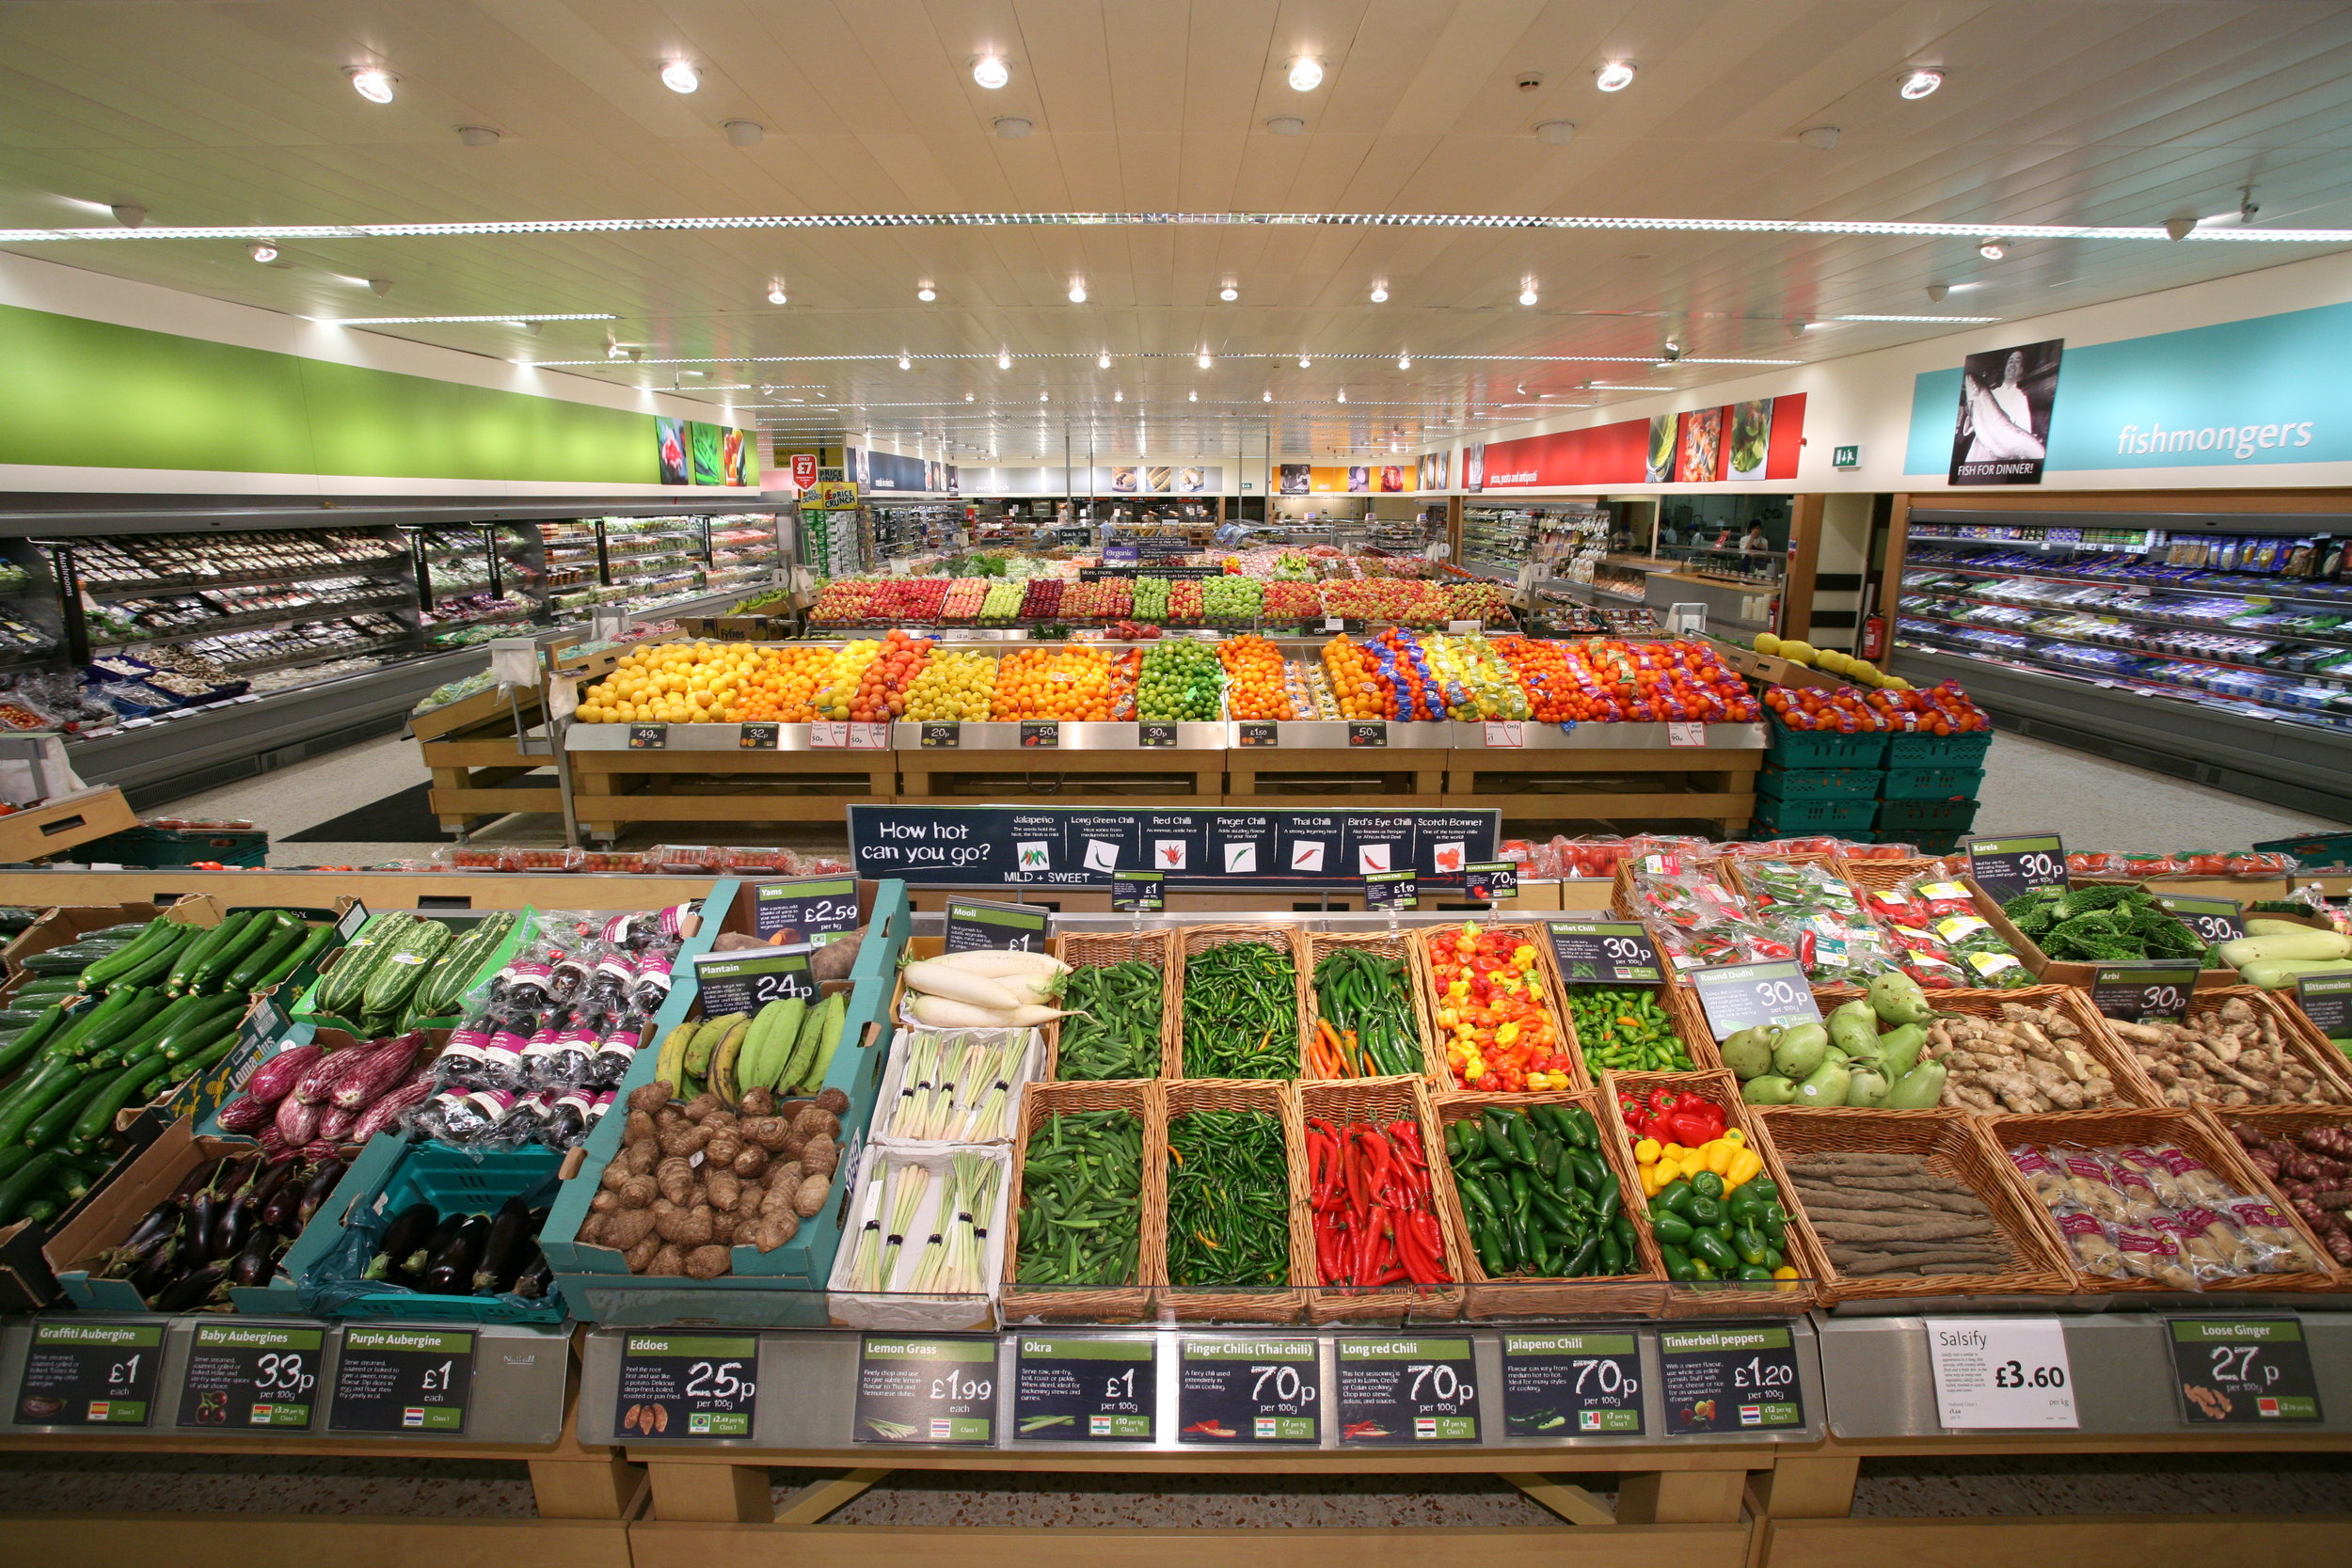 Designing and delivering senior leadership development programmes to embed a new company vision, behaviours and leadership skills for one of the top four supermarkets